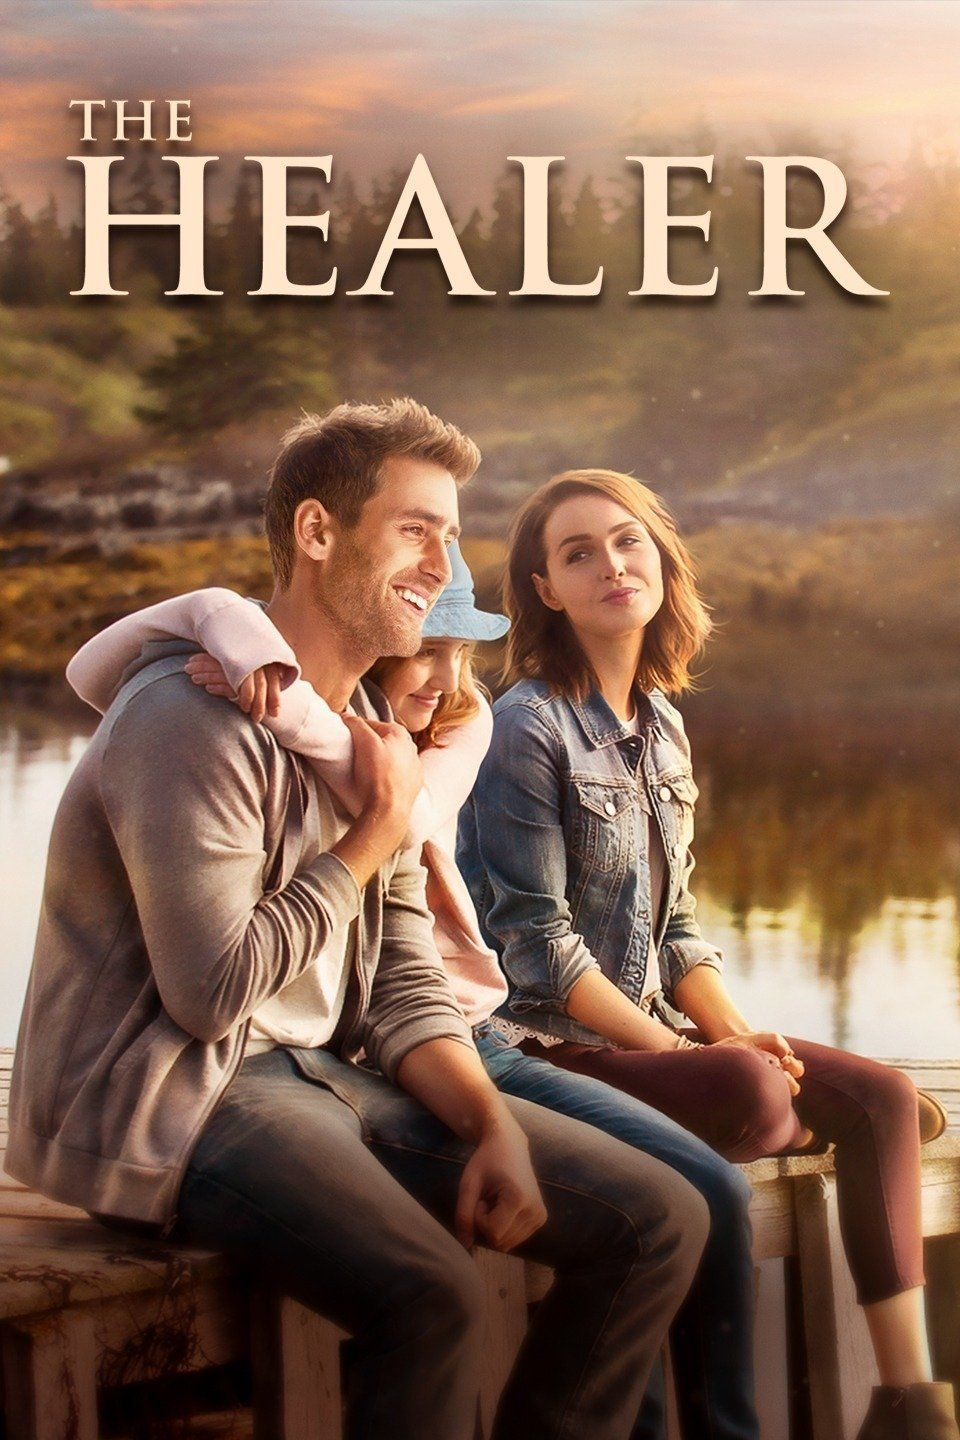 the healer Google Search in 2020 The healer movie